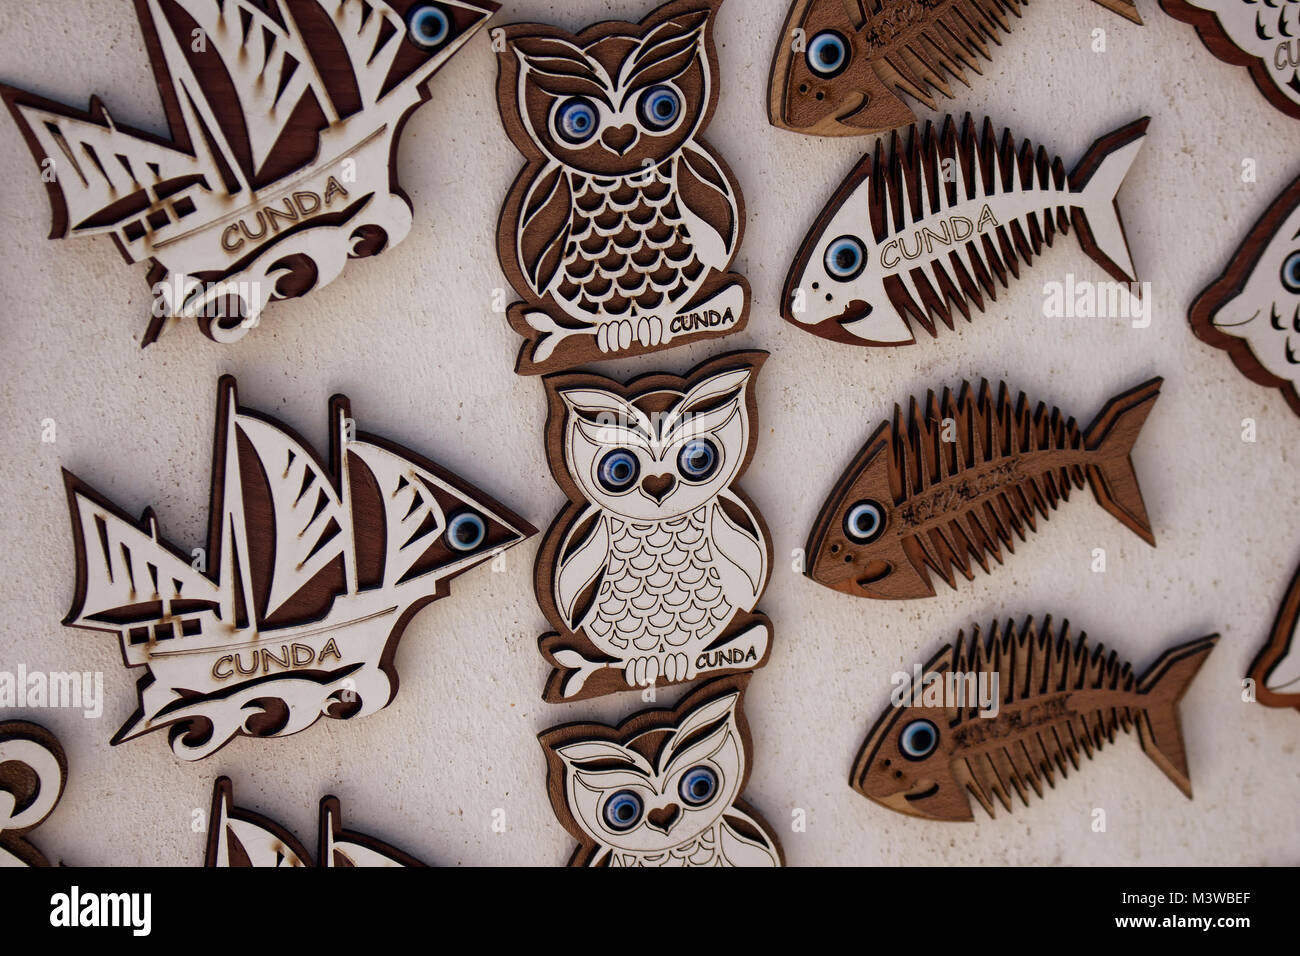 Close up view of wooden souvenirs of Cunda (Alibey) island. - Stock Image